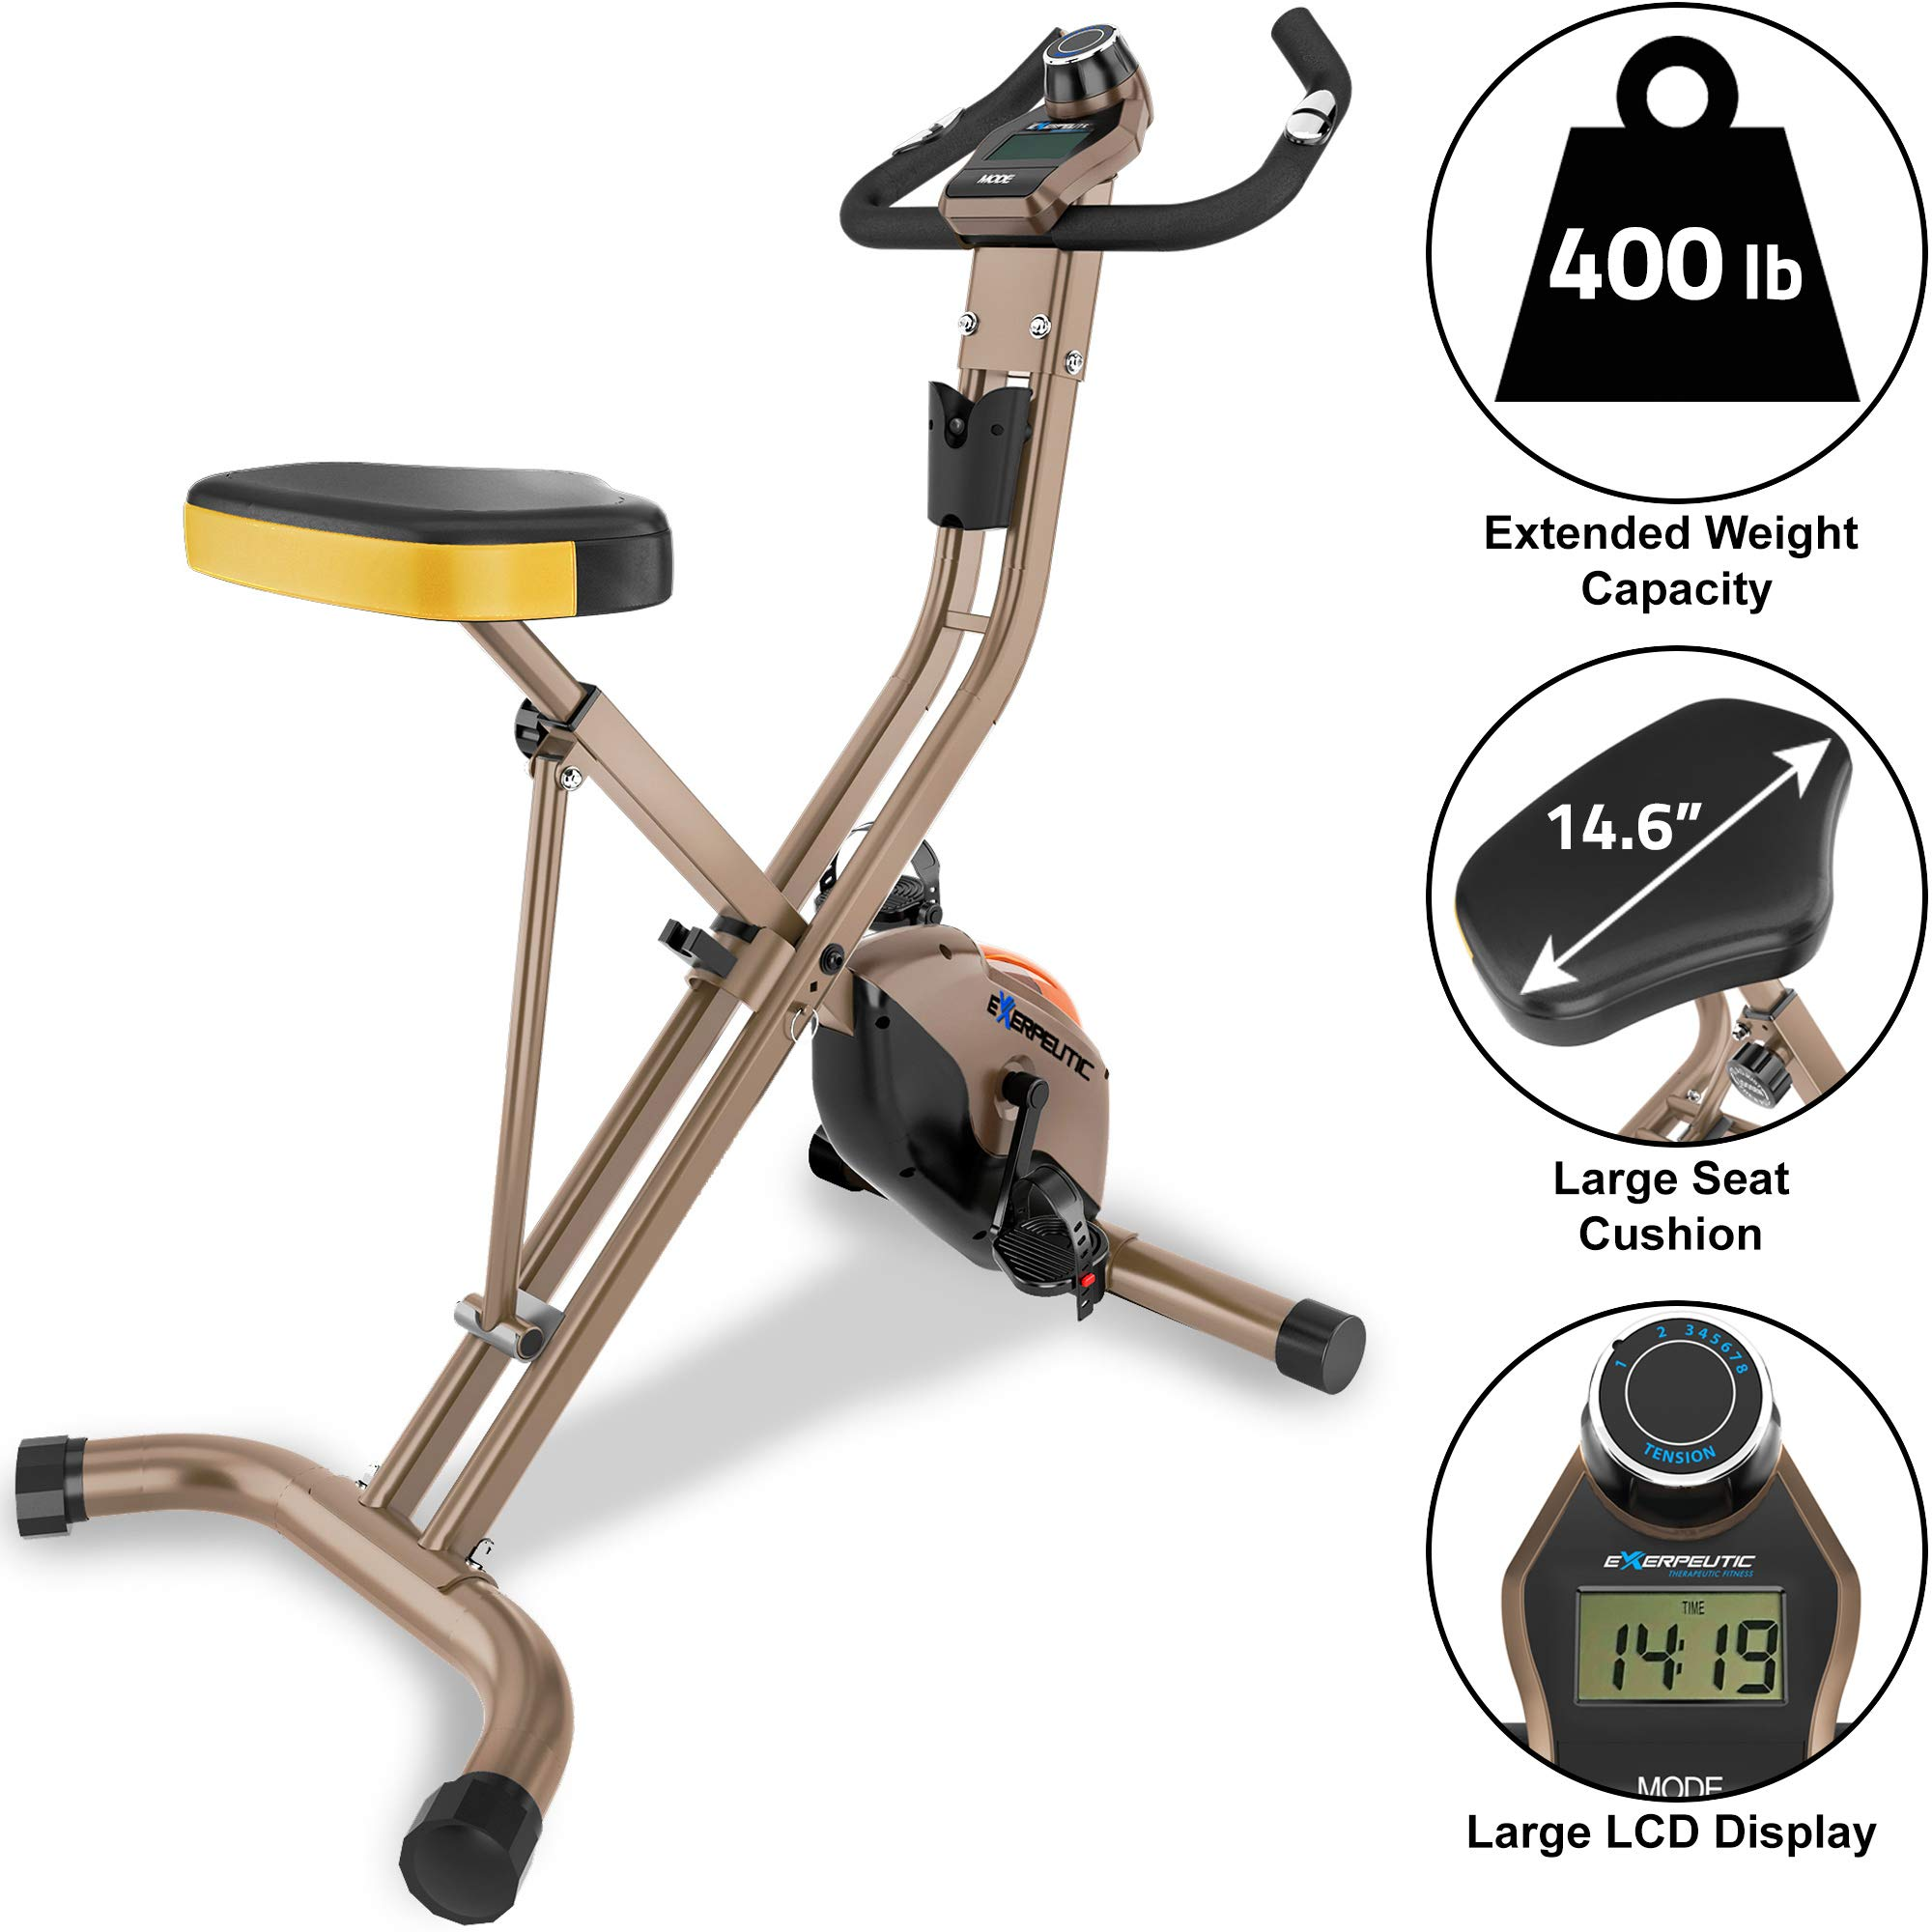 Exerpeutic GOLD 500 XLS Foldable Upright Bike, 400 lbs by Exerpeutic